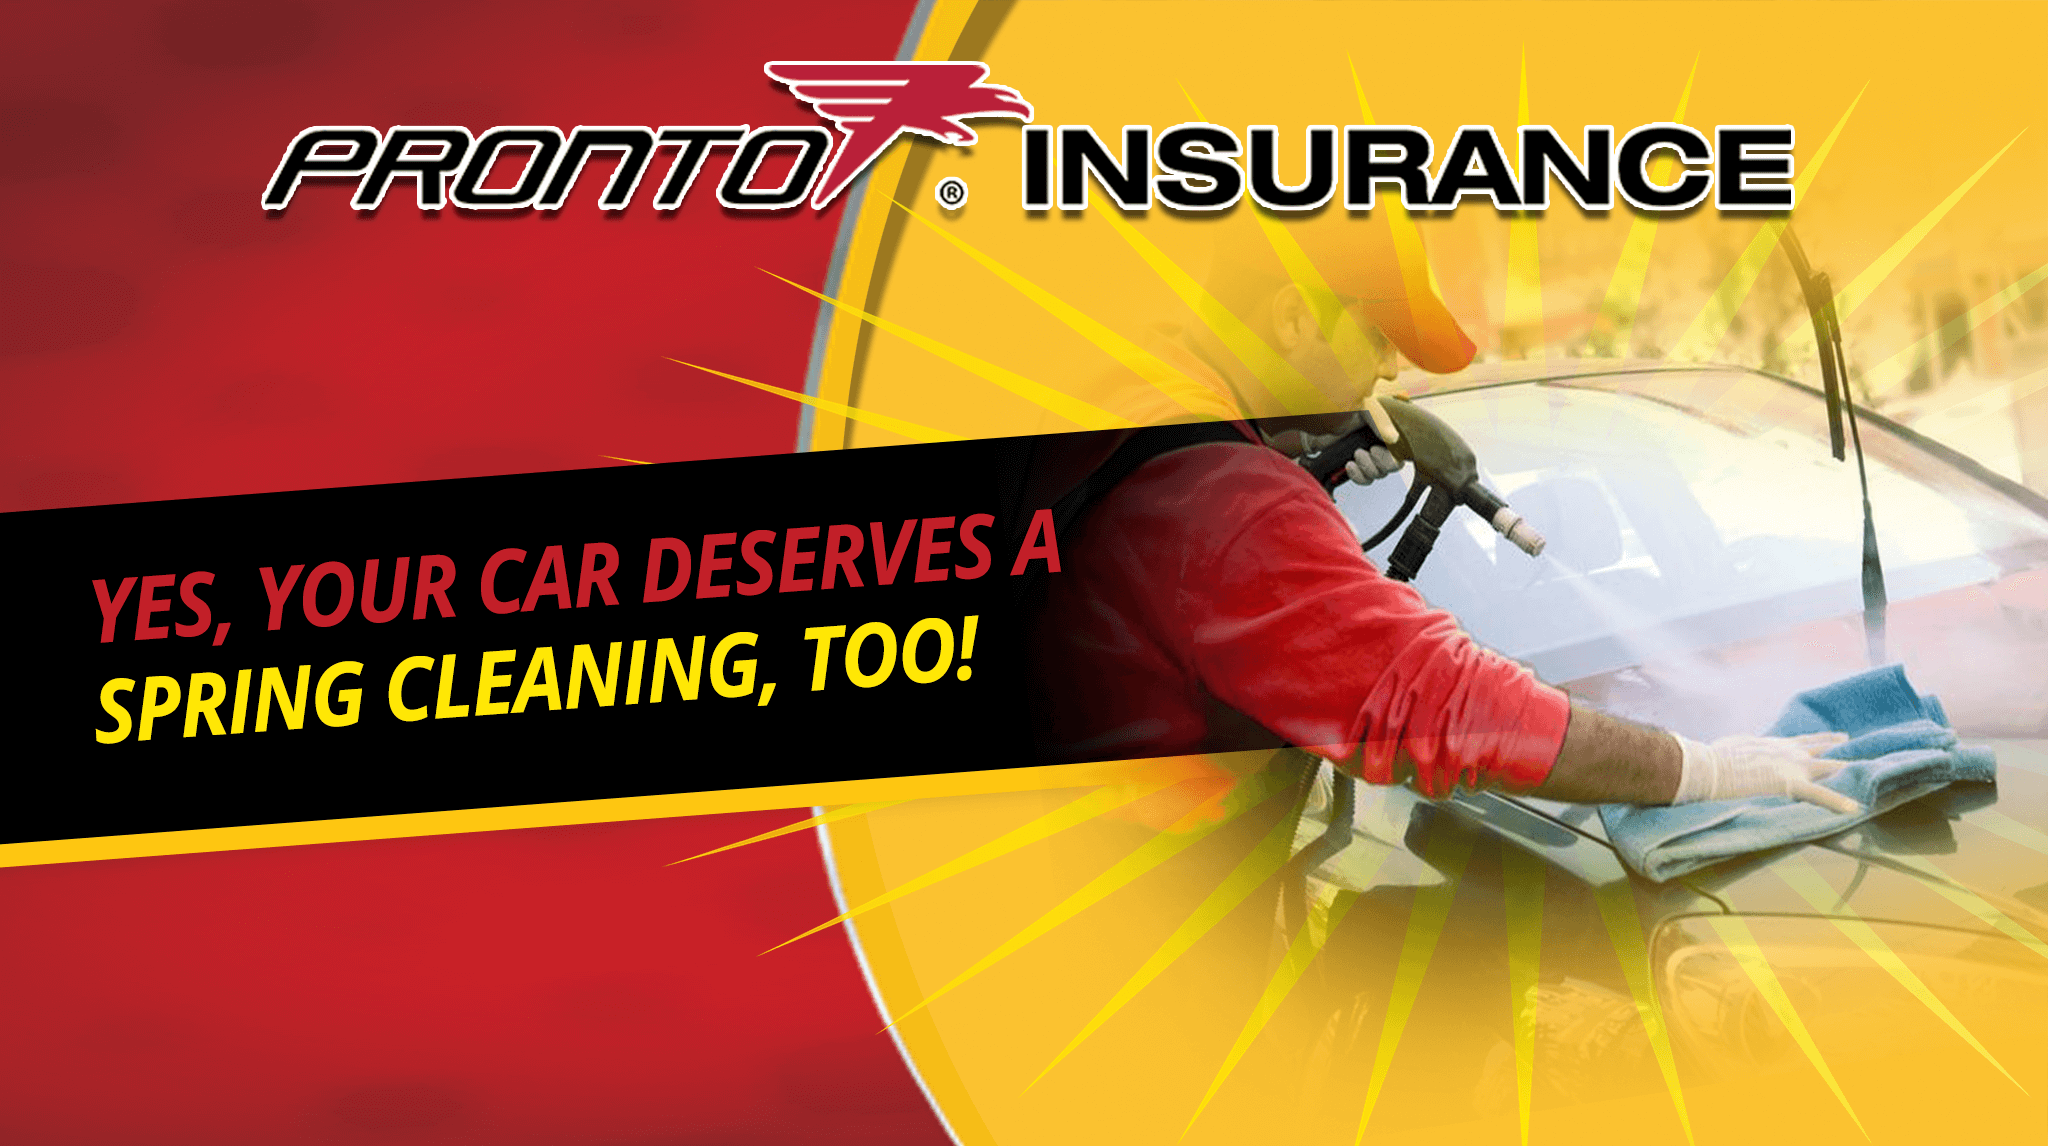 Yes, Your Car Deserves a Spring Cleaning, Too!